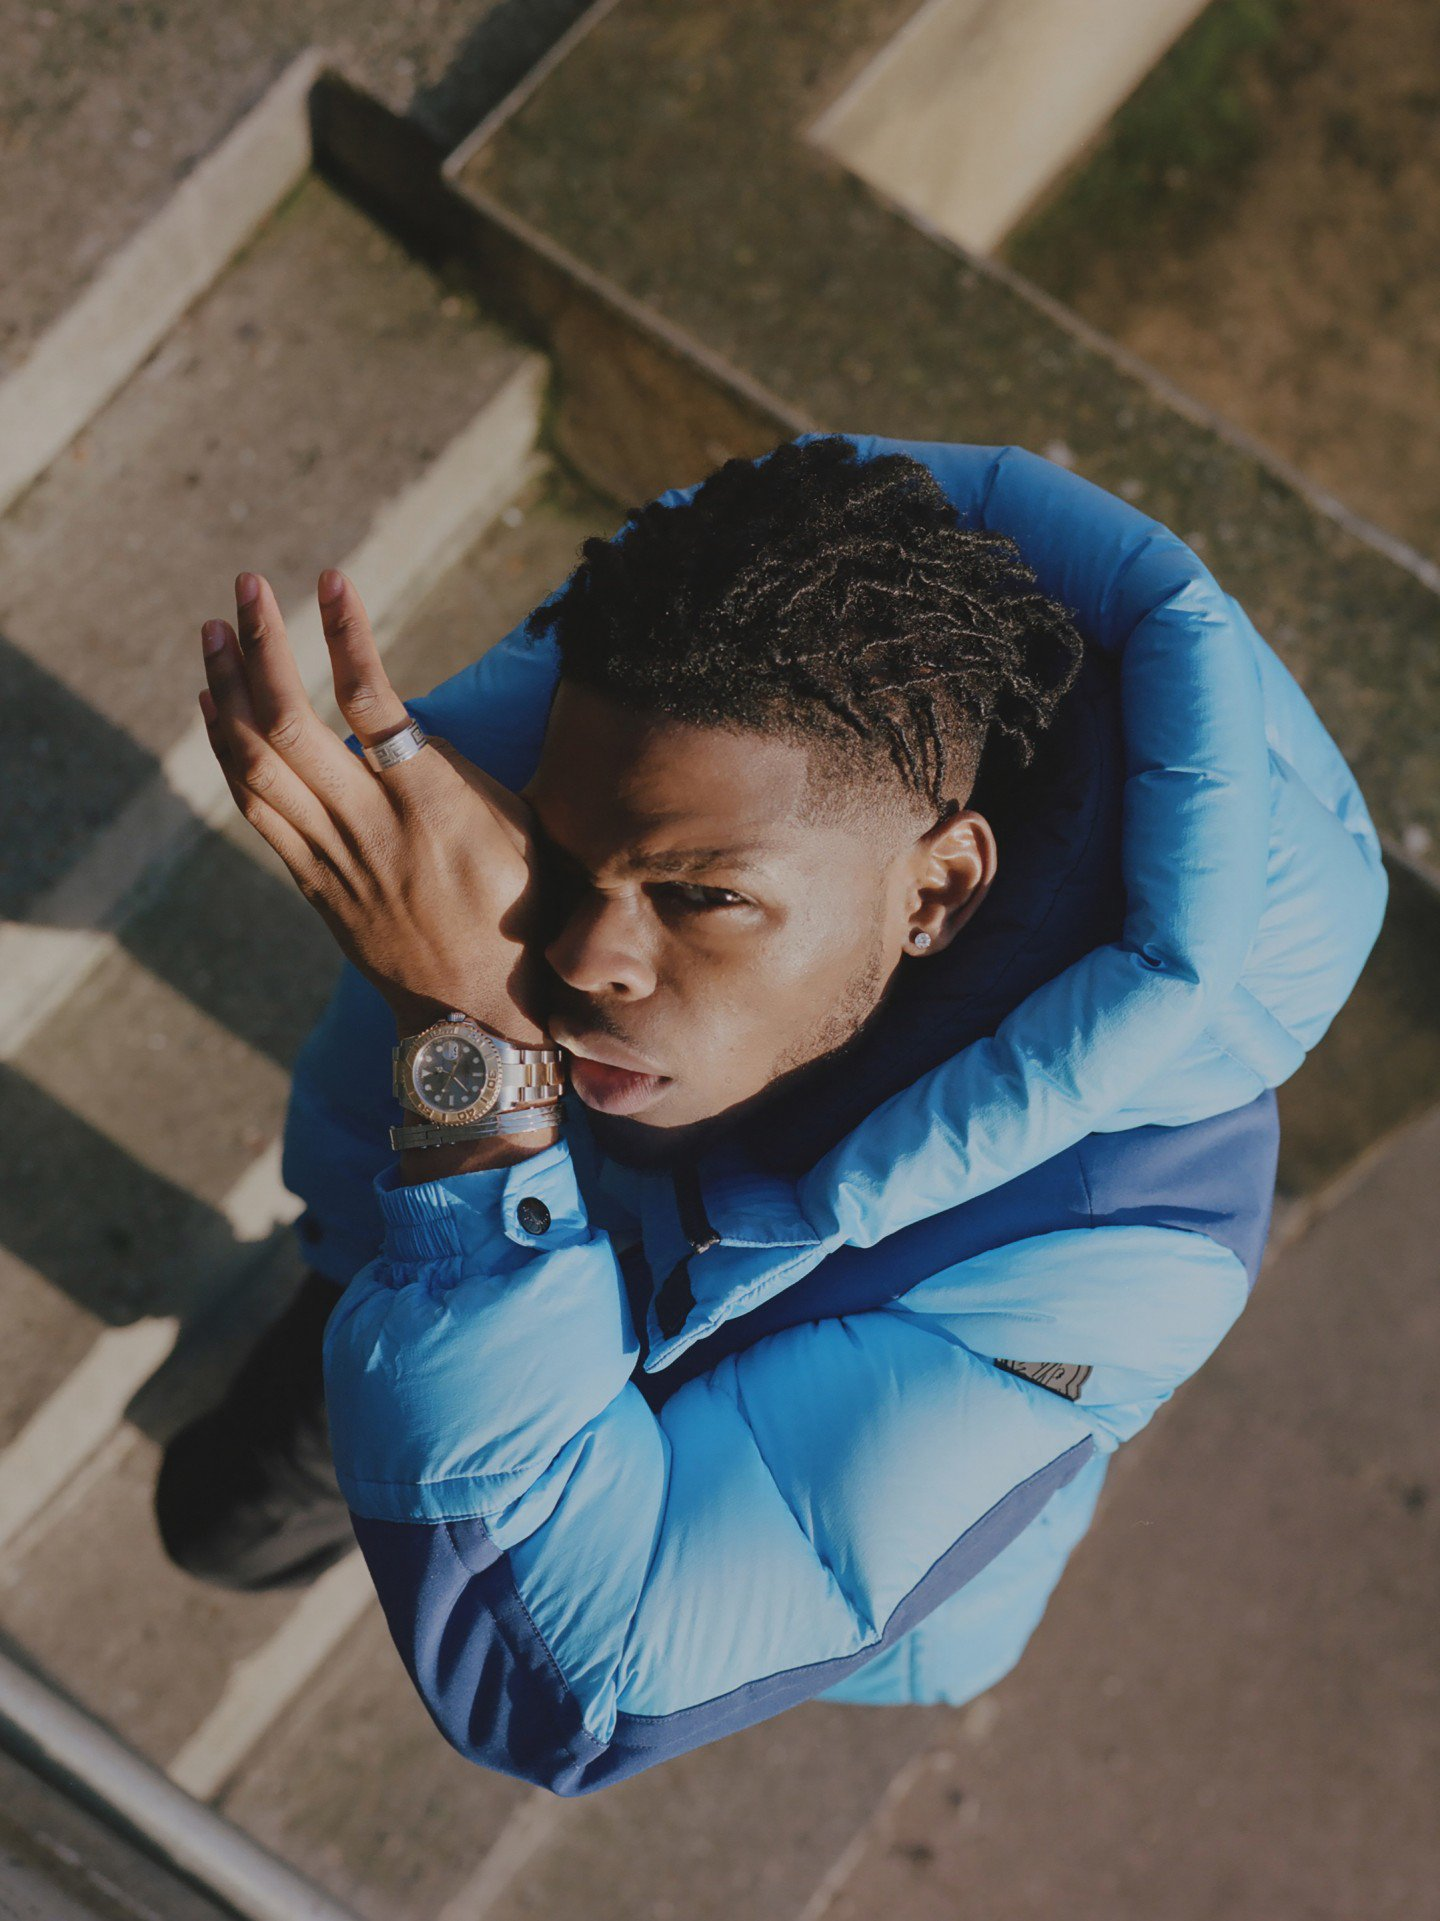 .@yxngbane is the most magnetic new voice on the British charts. https://t.co/kpj5wtPpyG https://t.co/Zit9w4NJvA